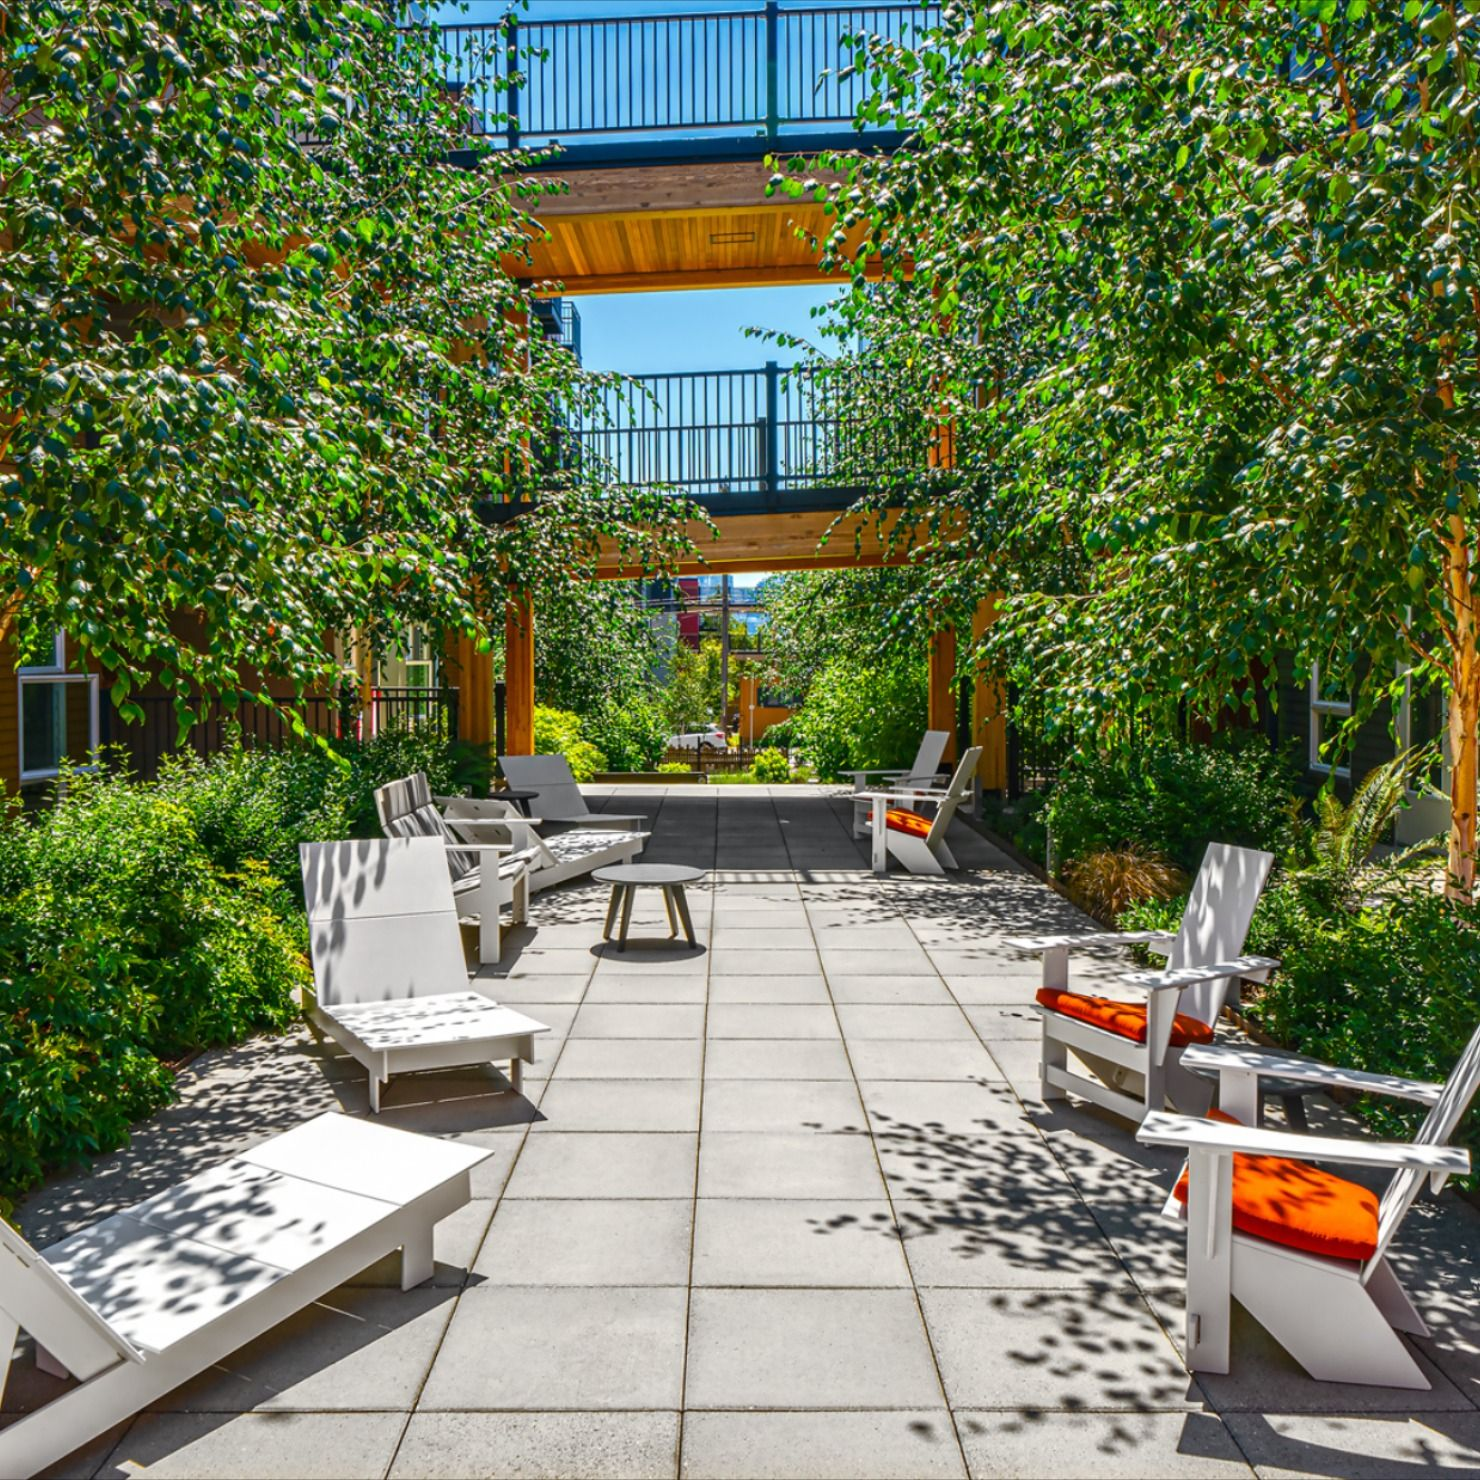 Tour the landscaped courtyard of our Wallingford